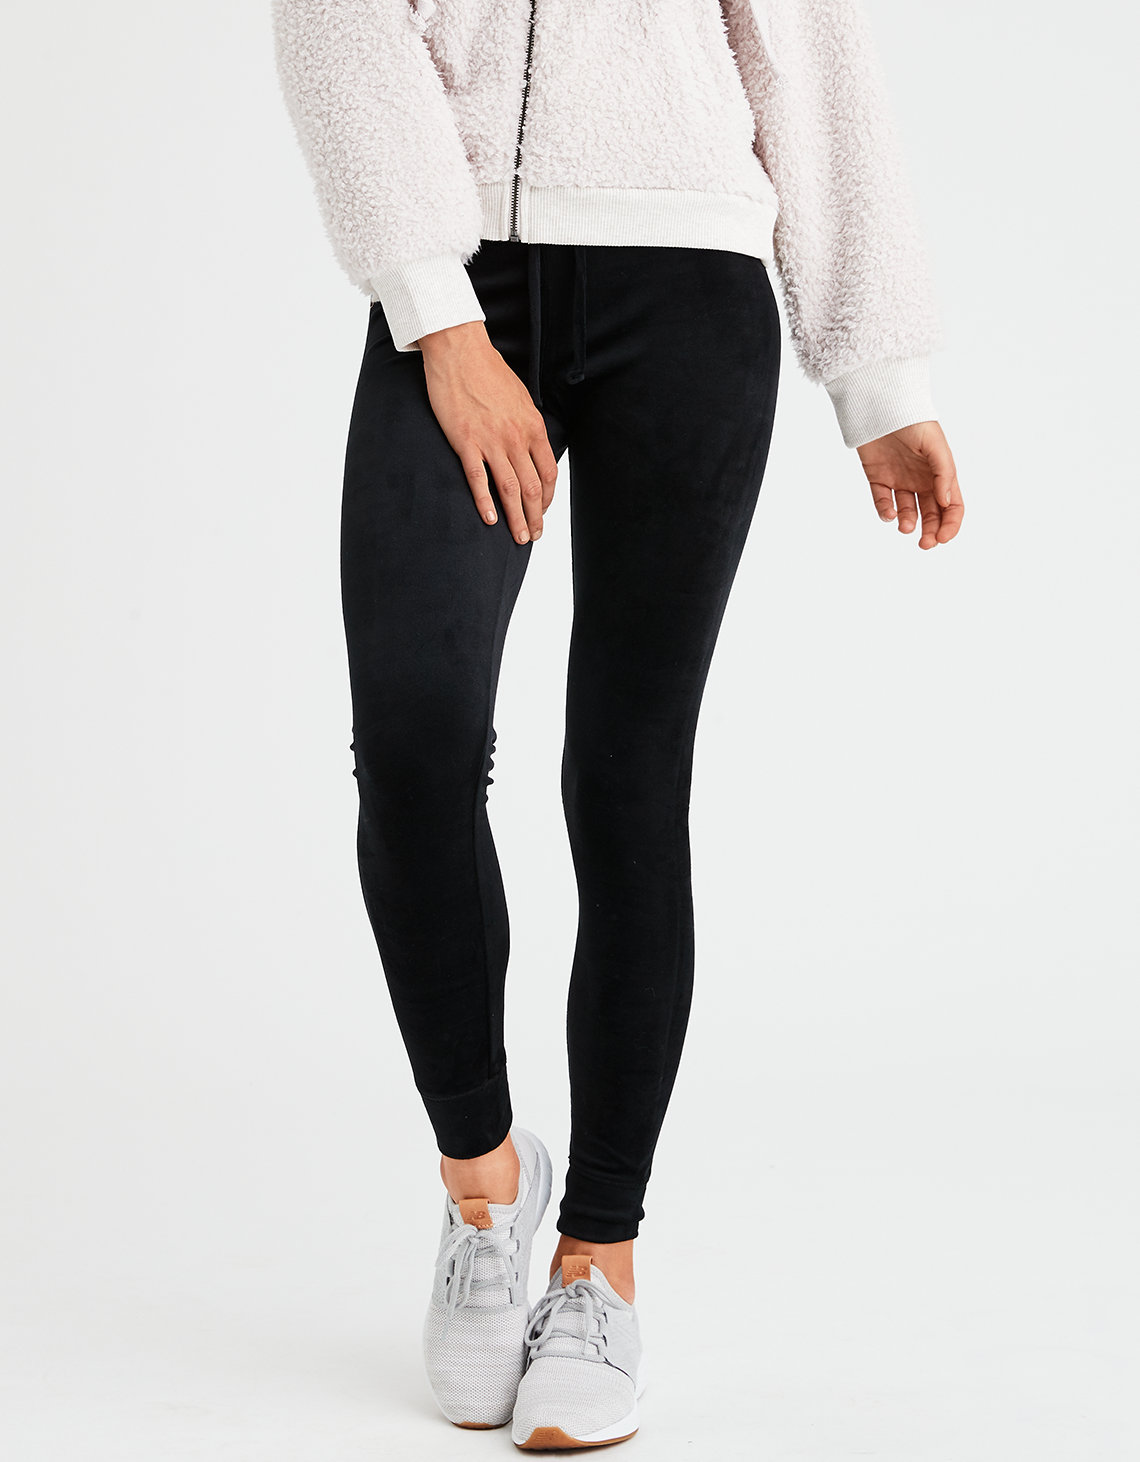 96f54a692a3 AEO Plush Velour Sweater Legging